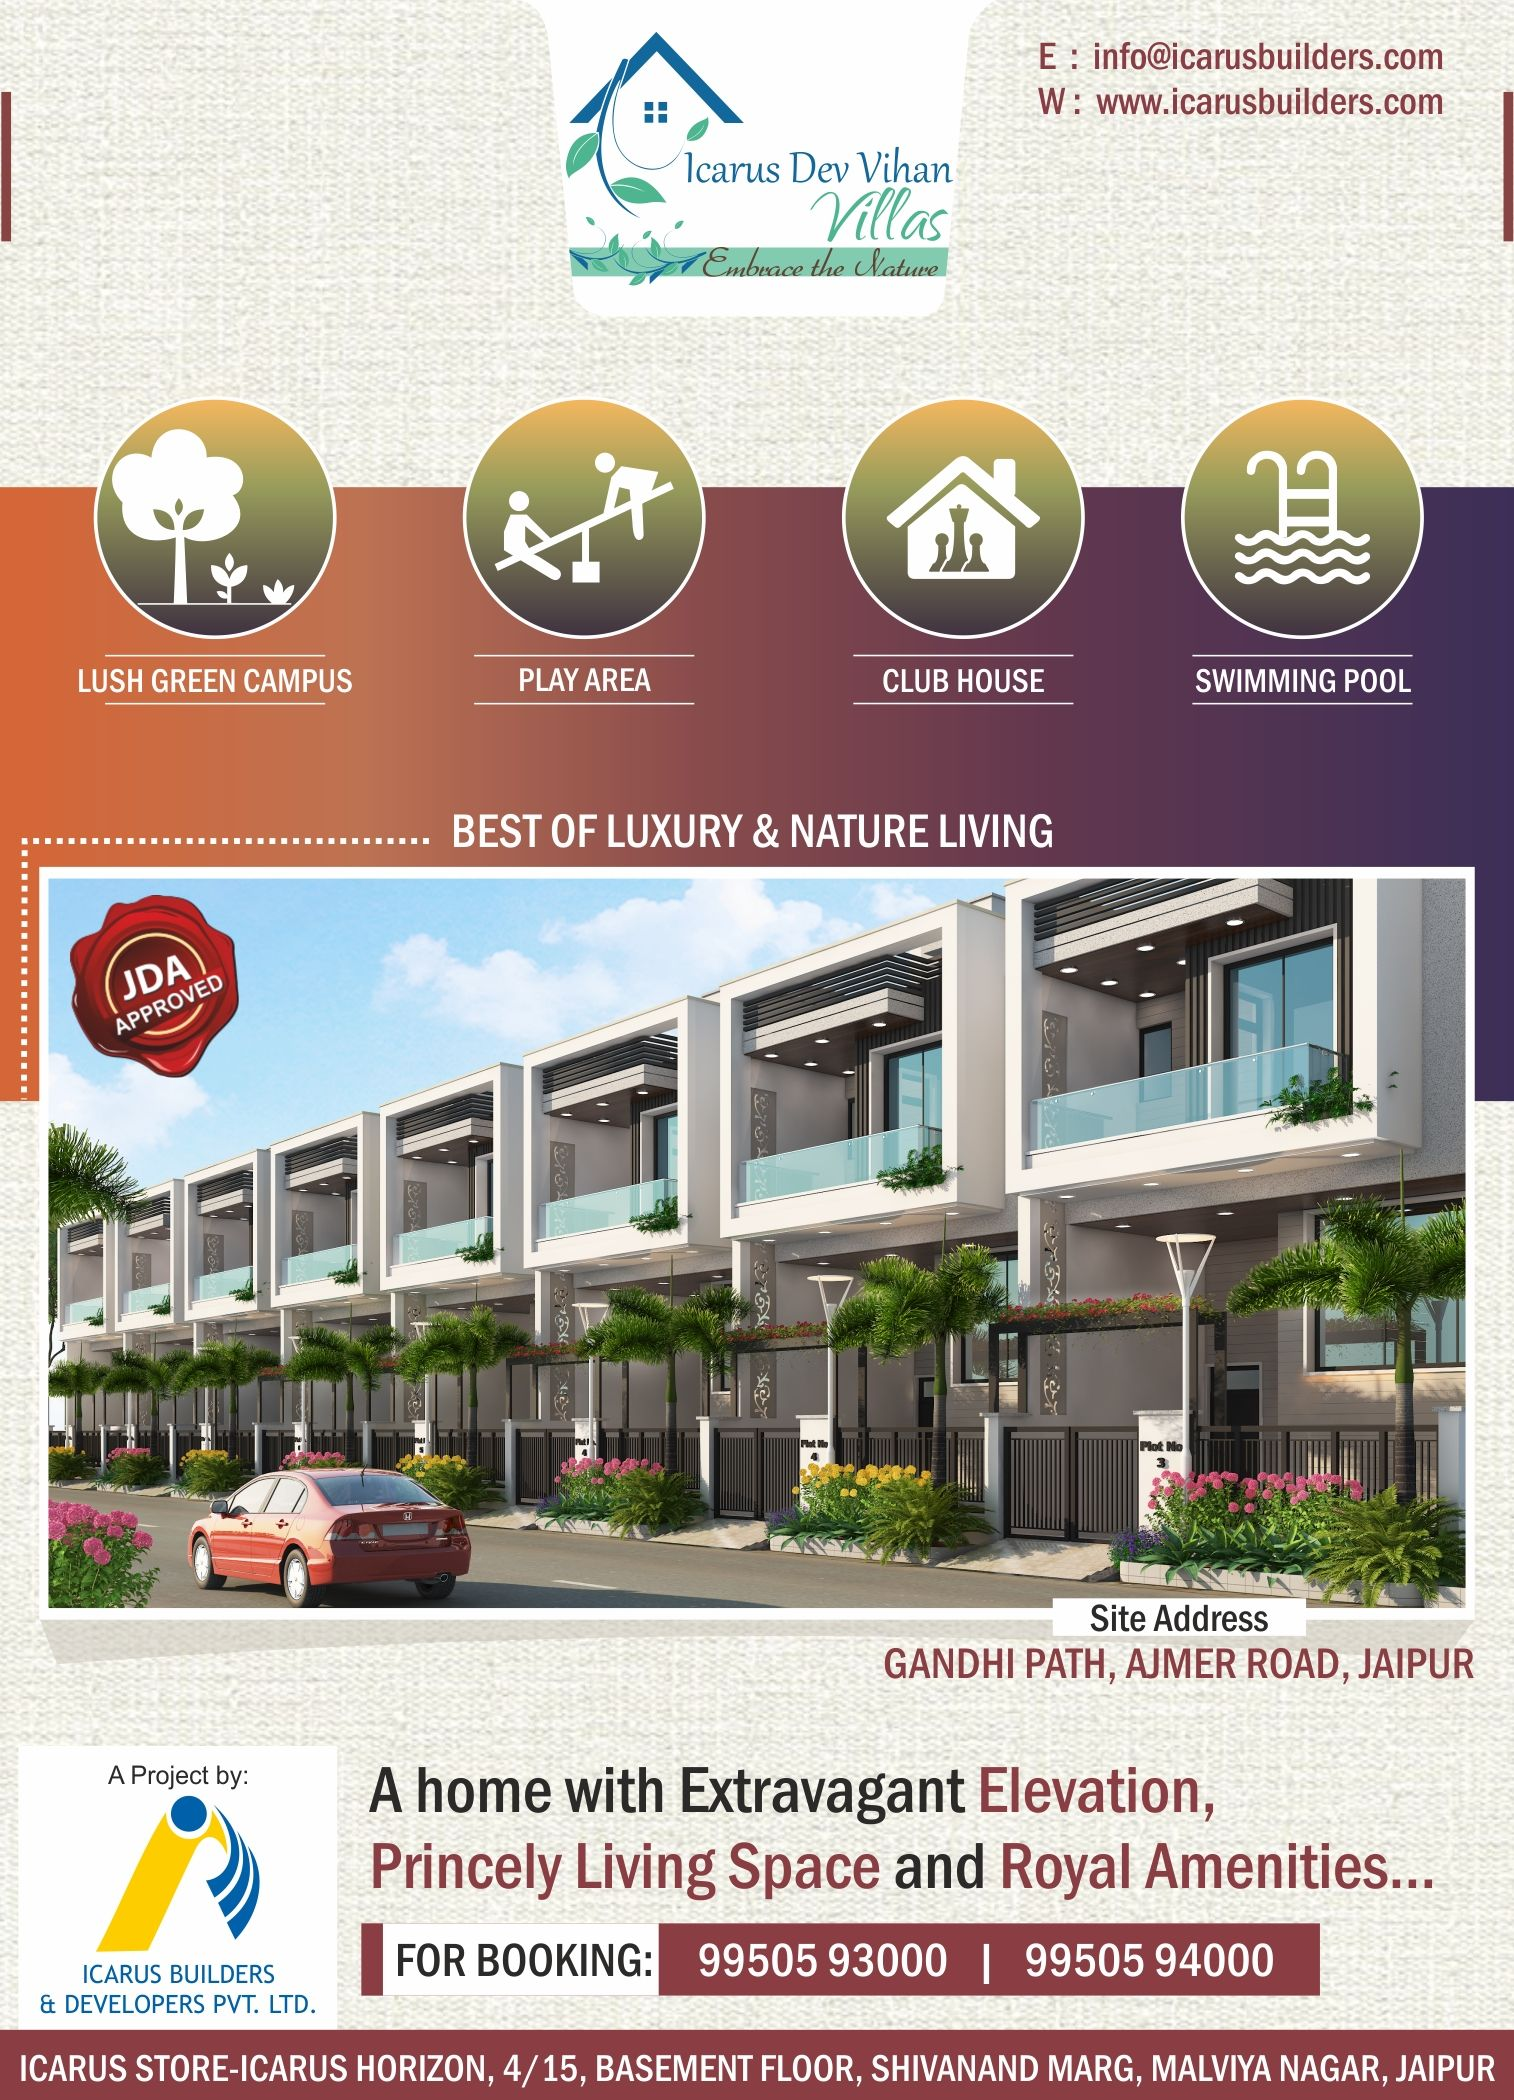 Most Luxury Most Affordable Icarus Dev Vihan Villas At Vaishali Nagar Jaipur Villa Luxury Villa Swimming Pools